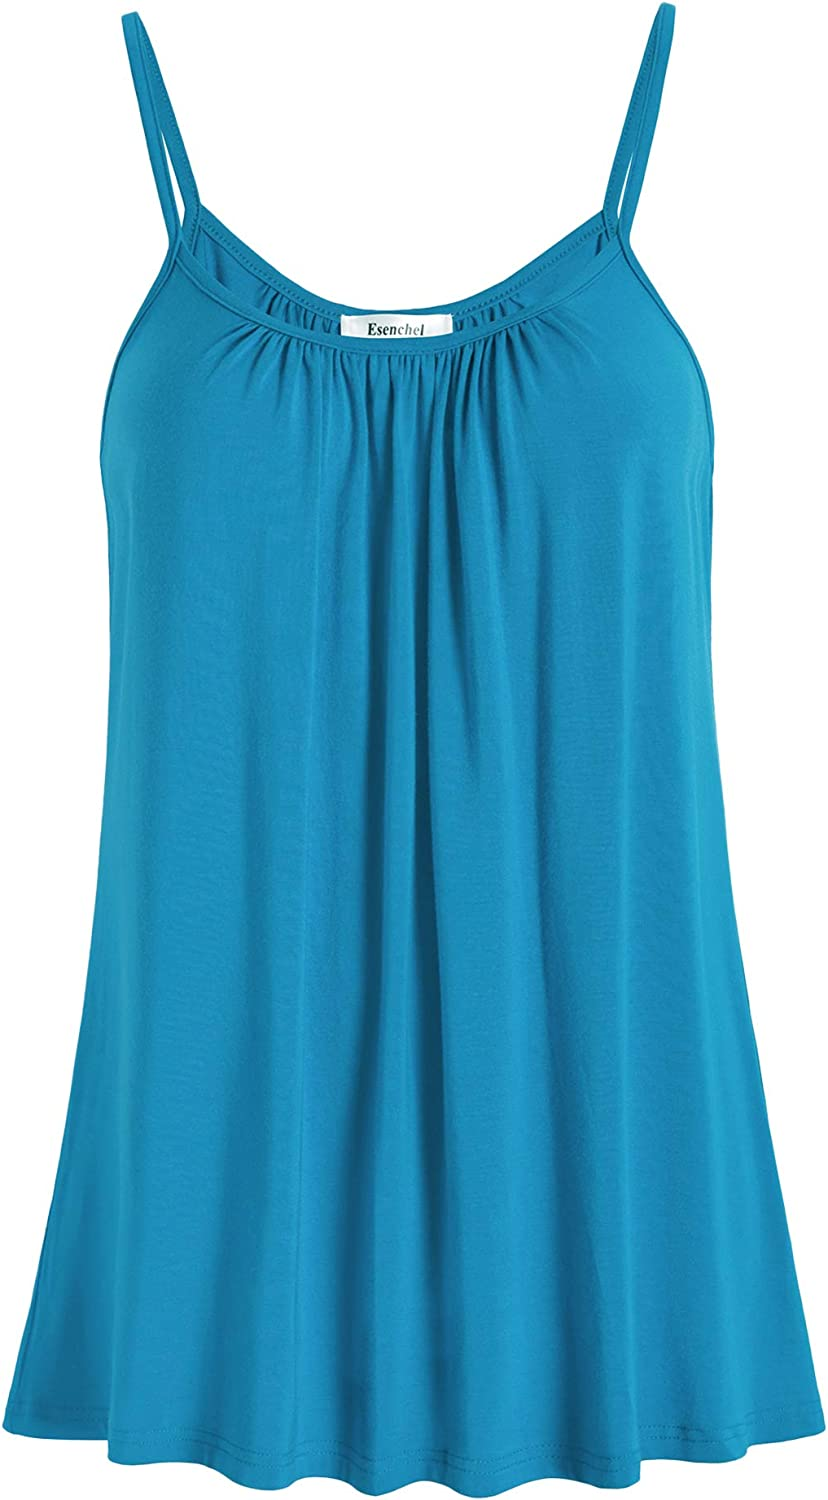 Esenchel Women's Loose Discount mail order Cami Max 66% OFF Camisole Casual Top Tank